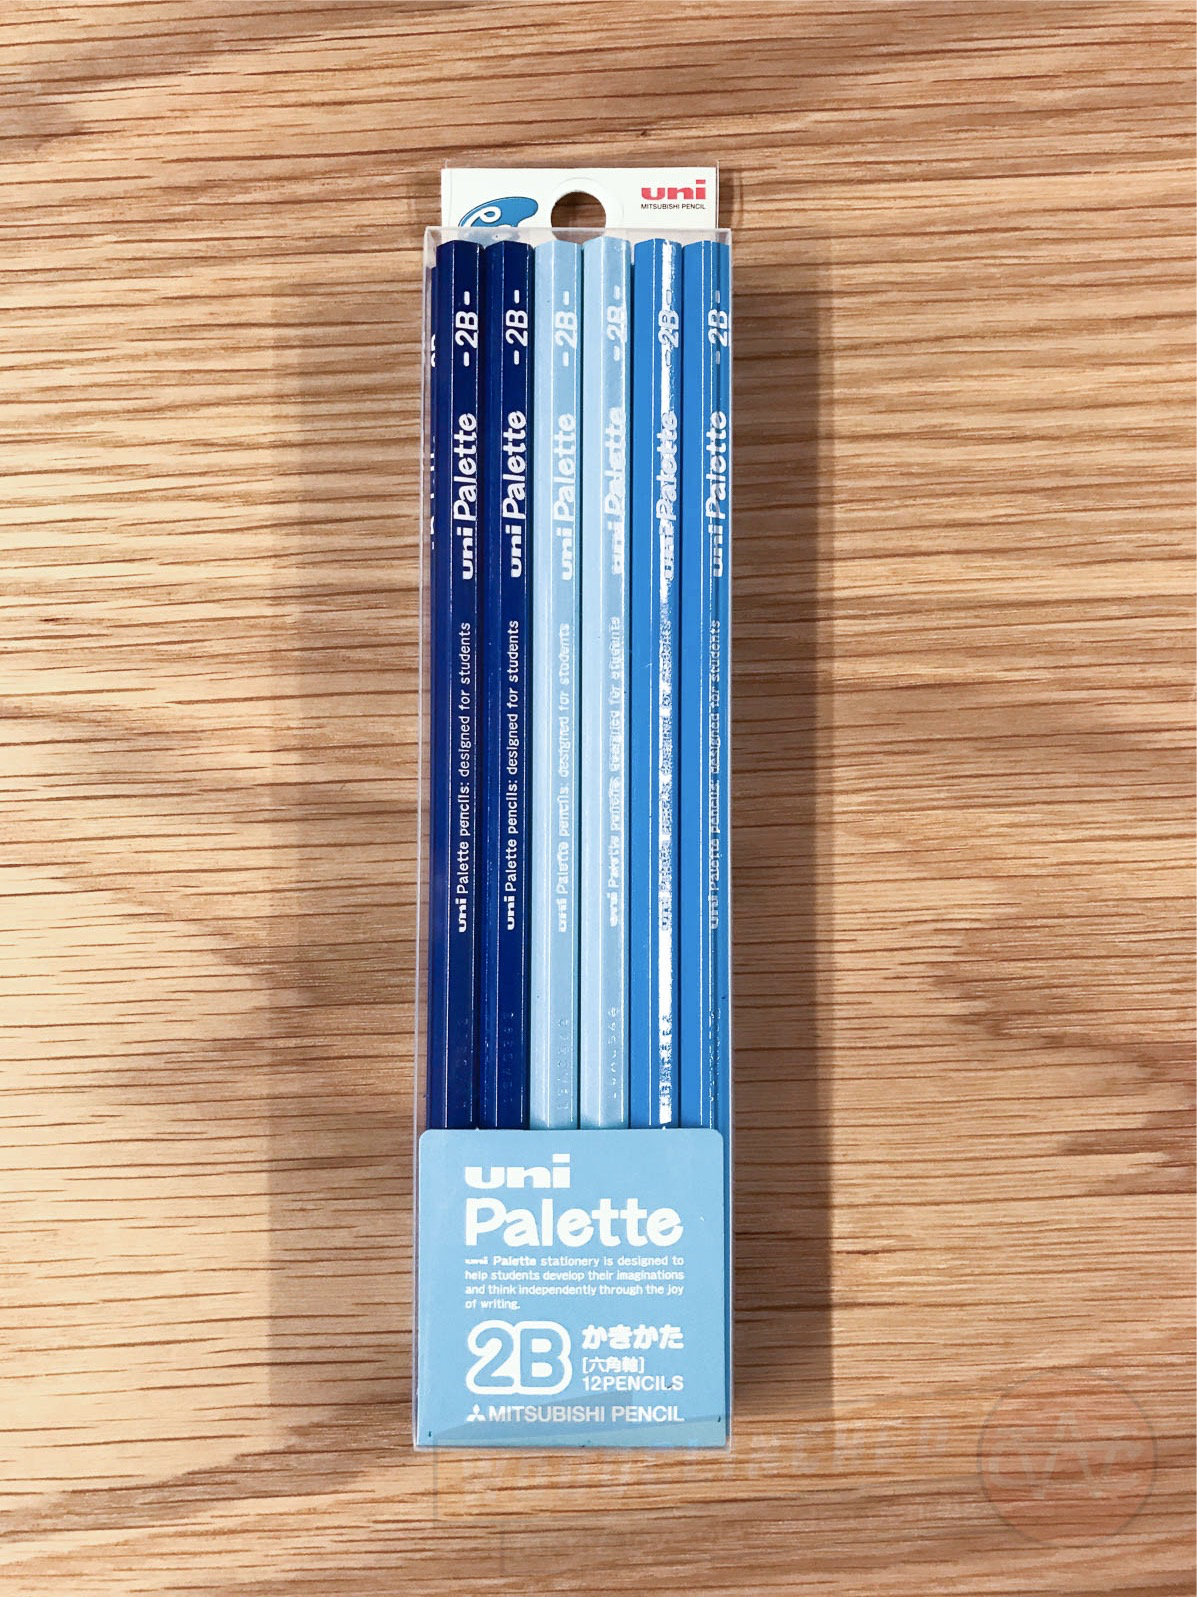 The Mitsubishi Uni Palette pencil